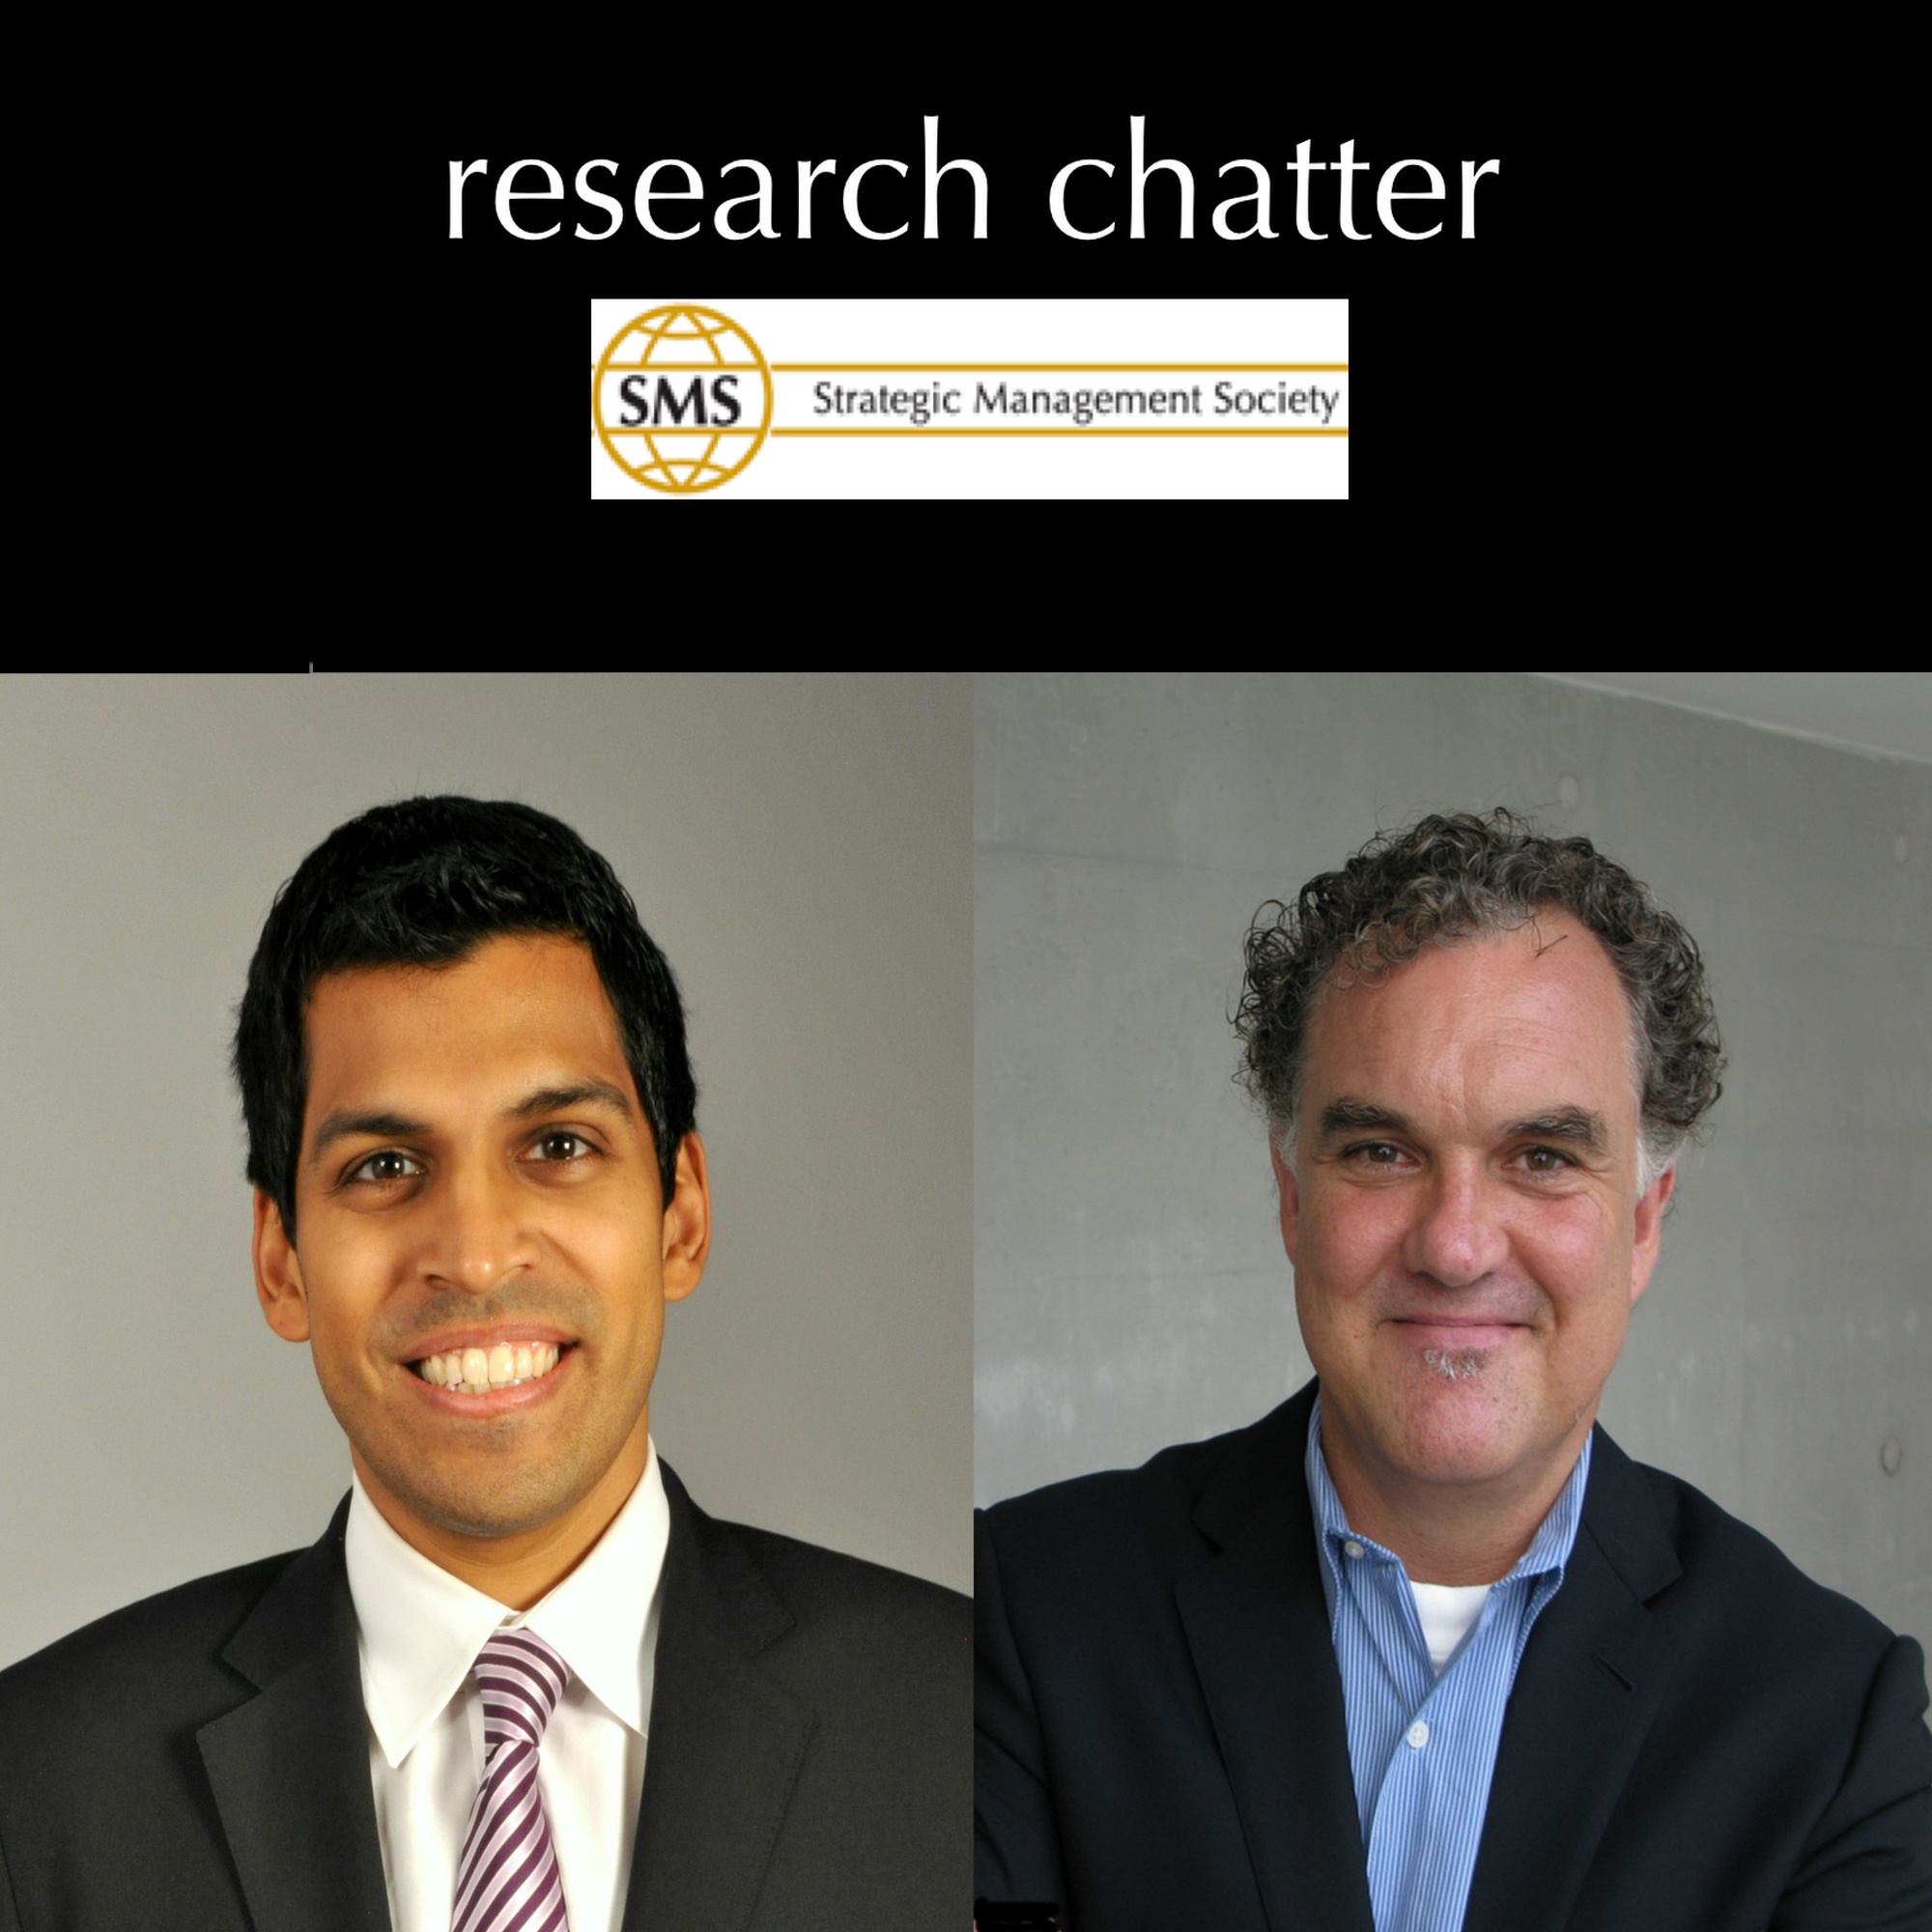 Research chatter: Big ideas from business school profs